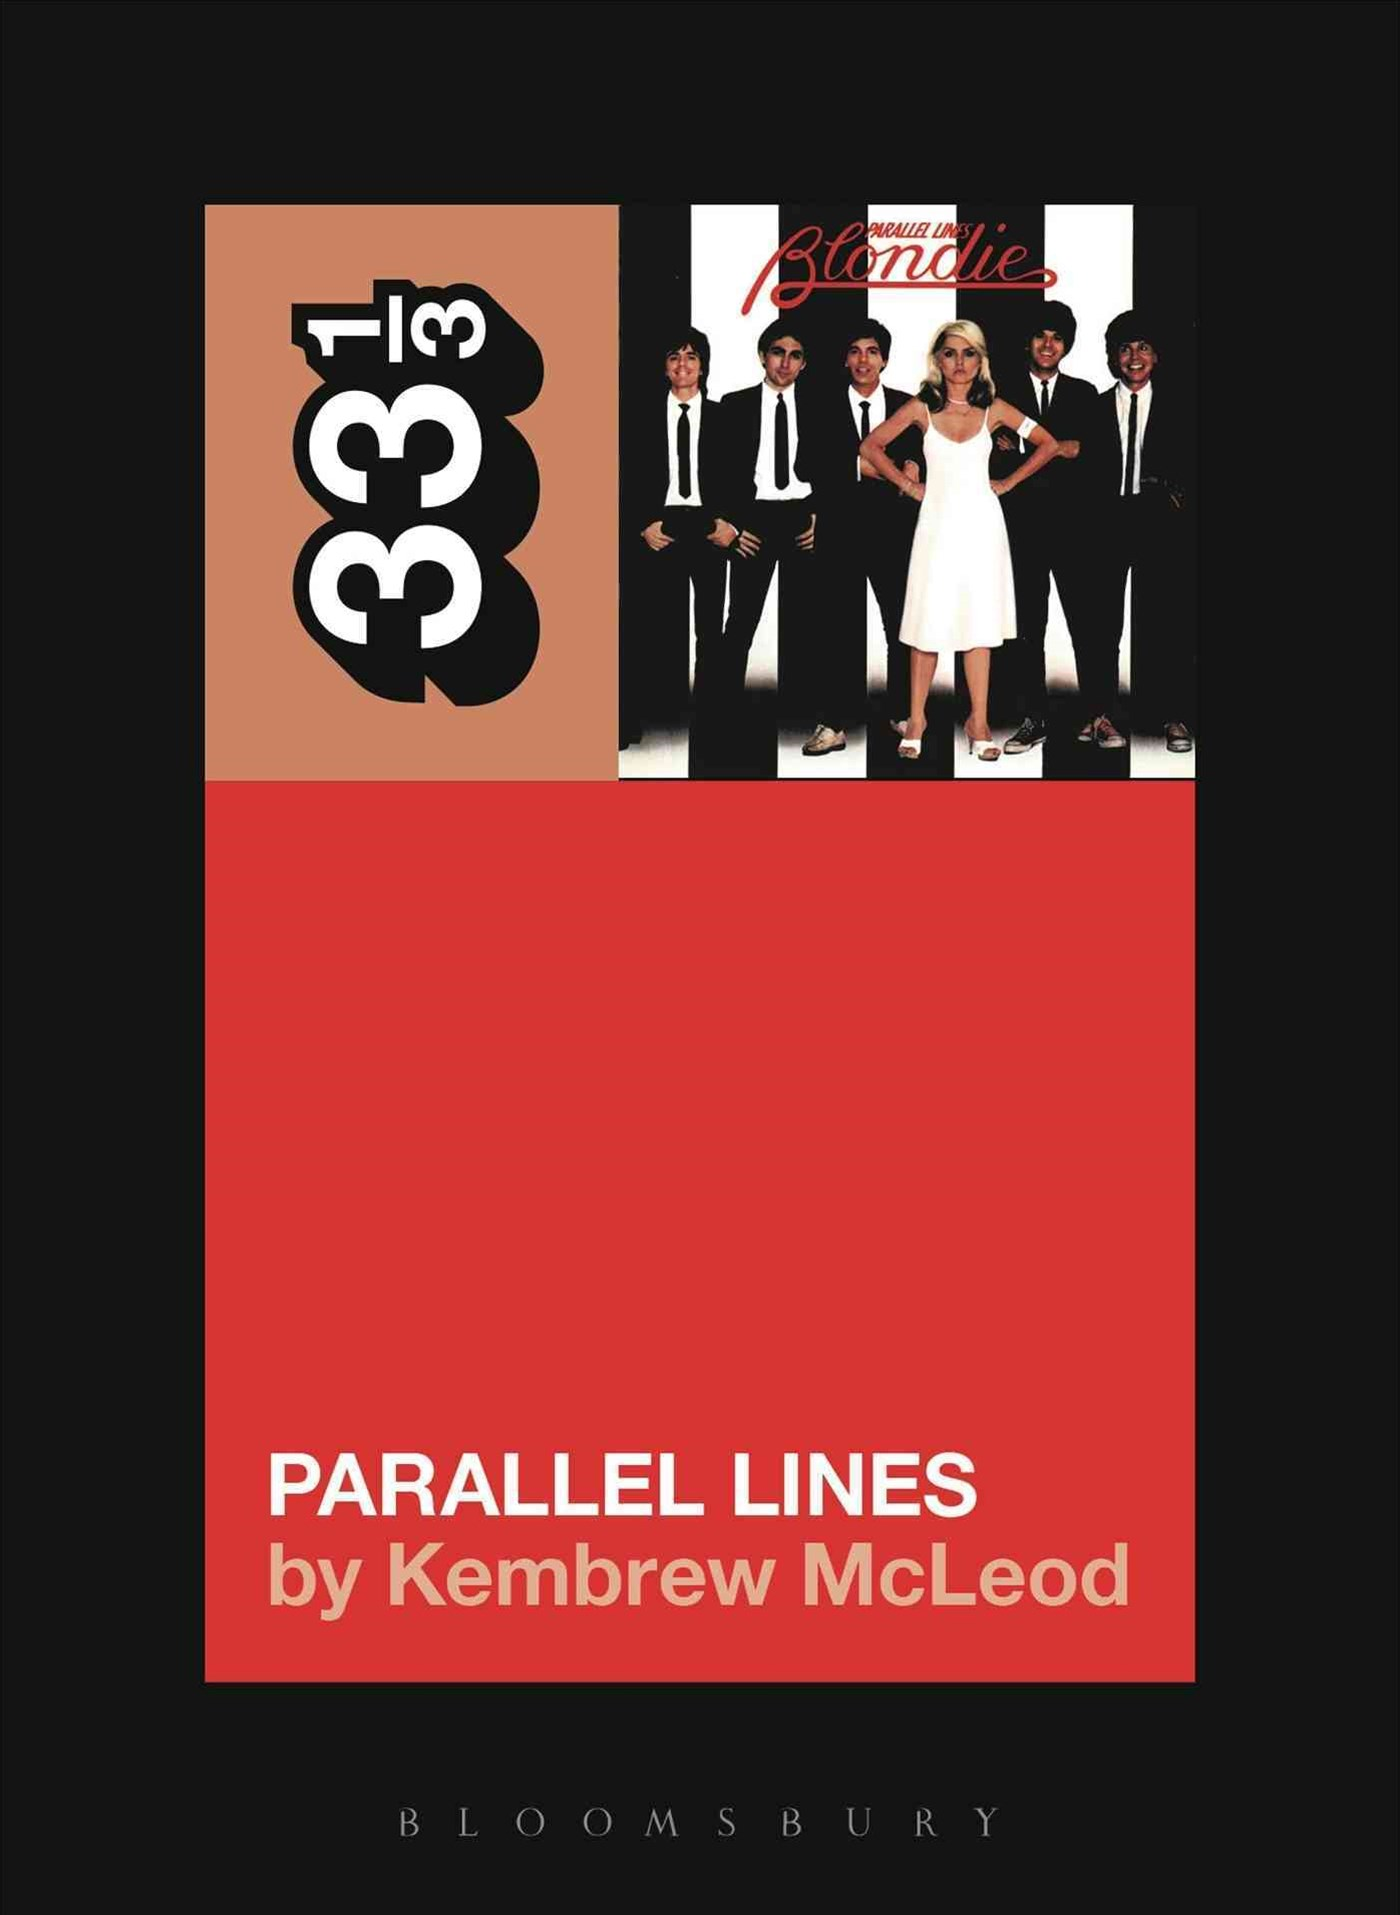 Blondie's Parallel Lines